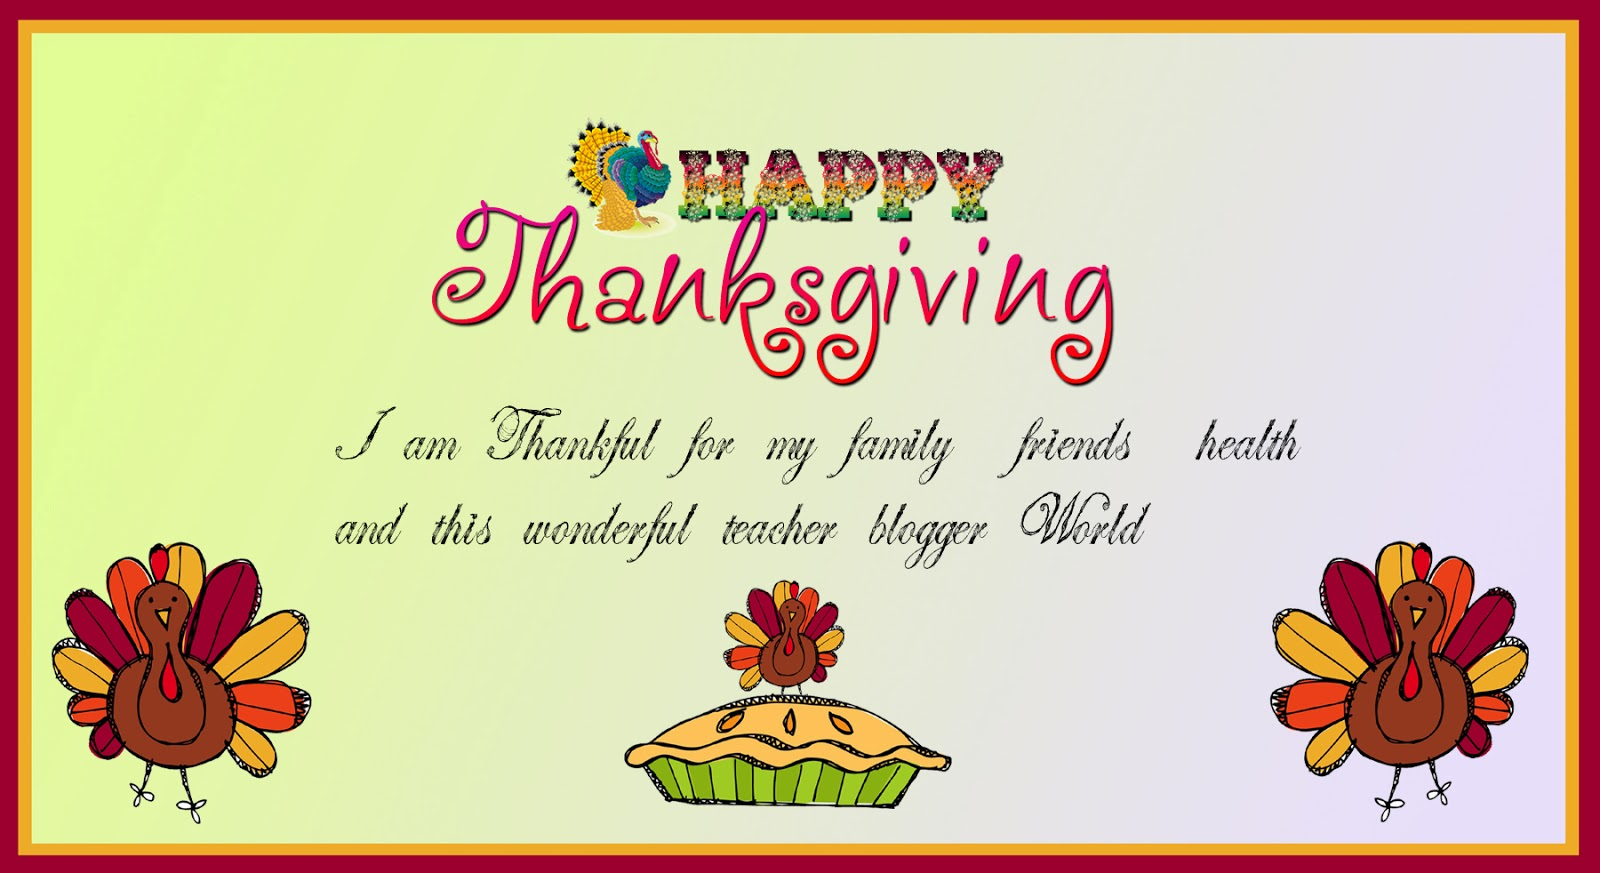 Best Thanksgiving Quotes For Friends: Thankful For Friends And Family Quotes. QuotesGram